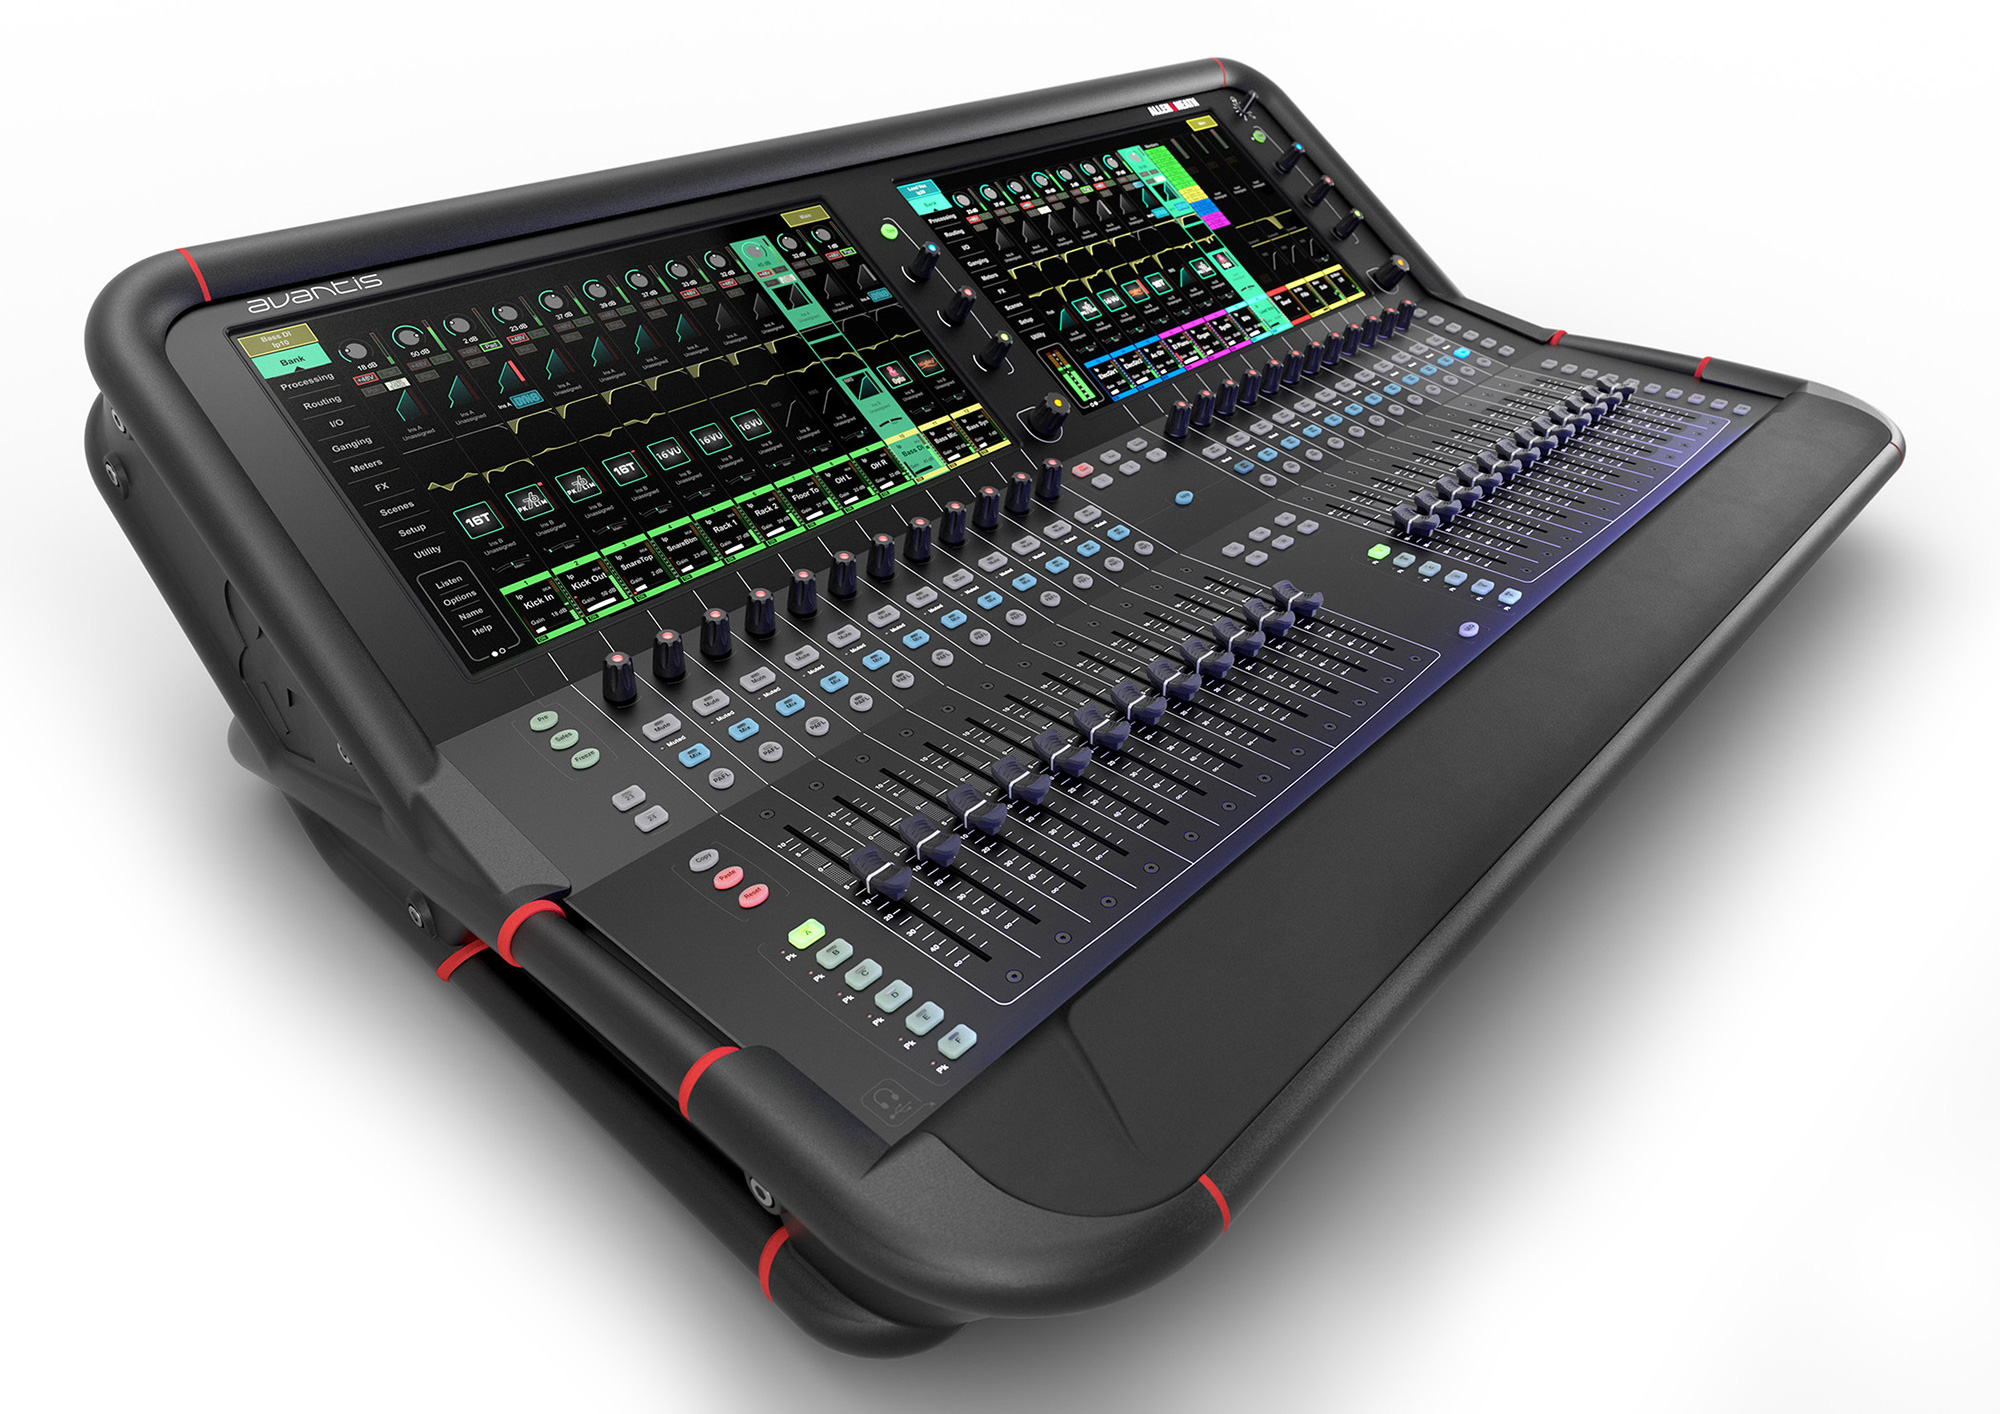 Allen & Heath AH-AVANTIS 96kHz 64 Channel Digital Mixer - 42 Bus - Dual Full HD Touchscreens AH-AVANTIS